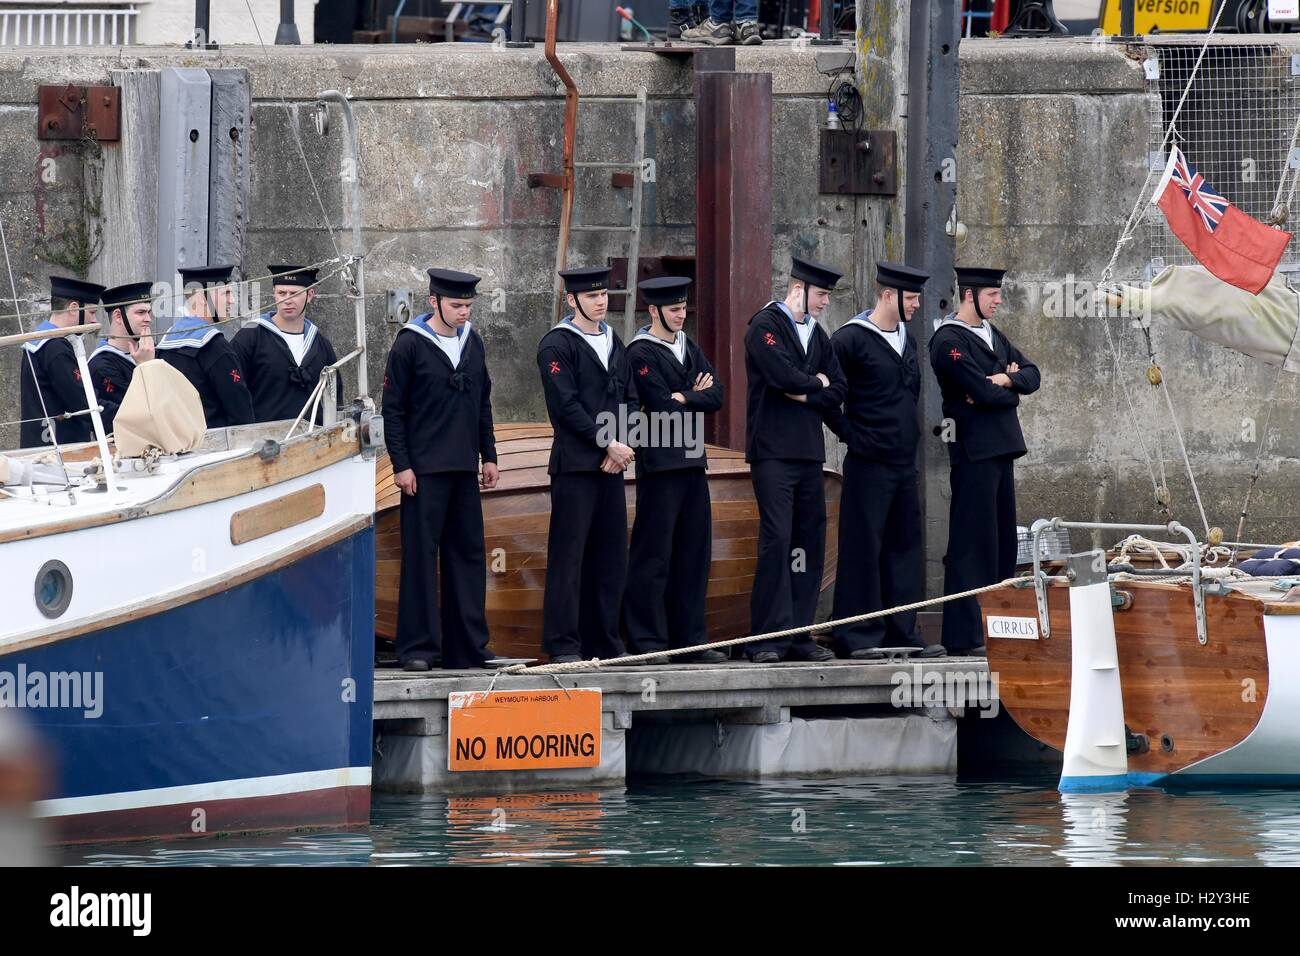 Harry Styles and Tom Hardy fans wait in Weymouth, Dorset as they are due to be filming the war movie Dunkirk. WeymouthStock Photo